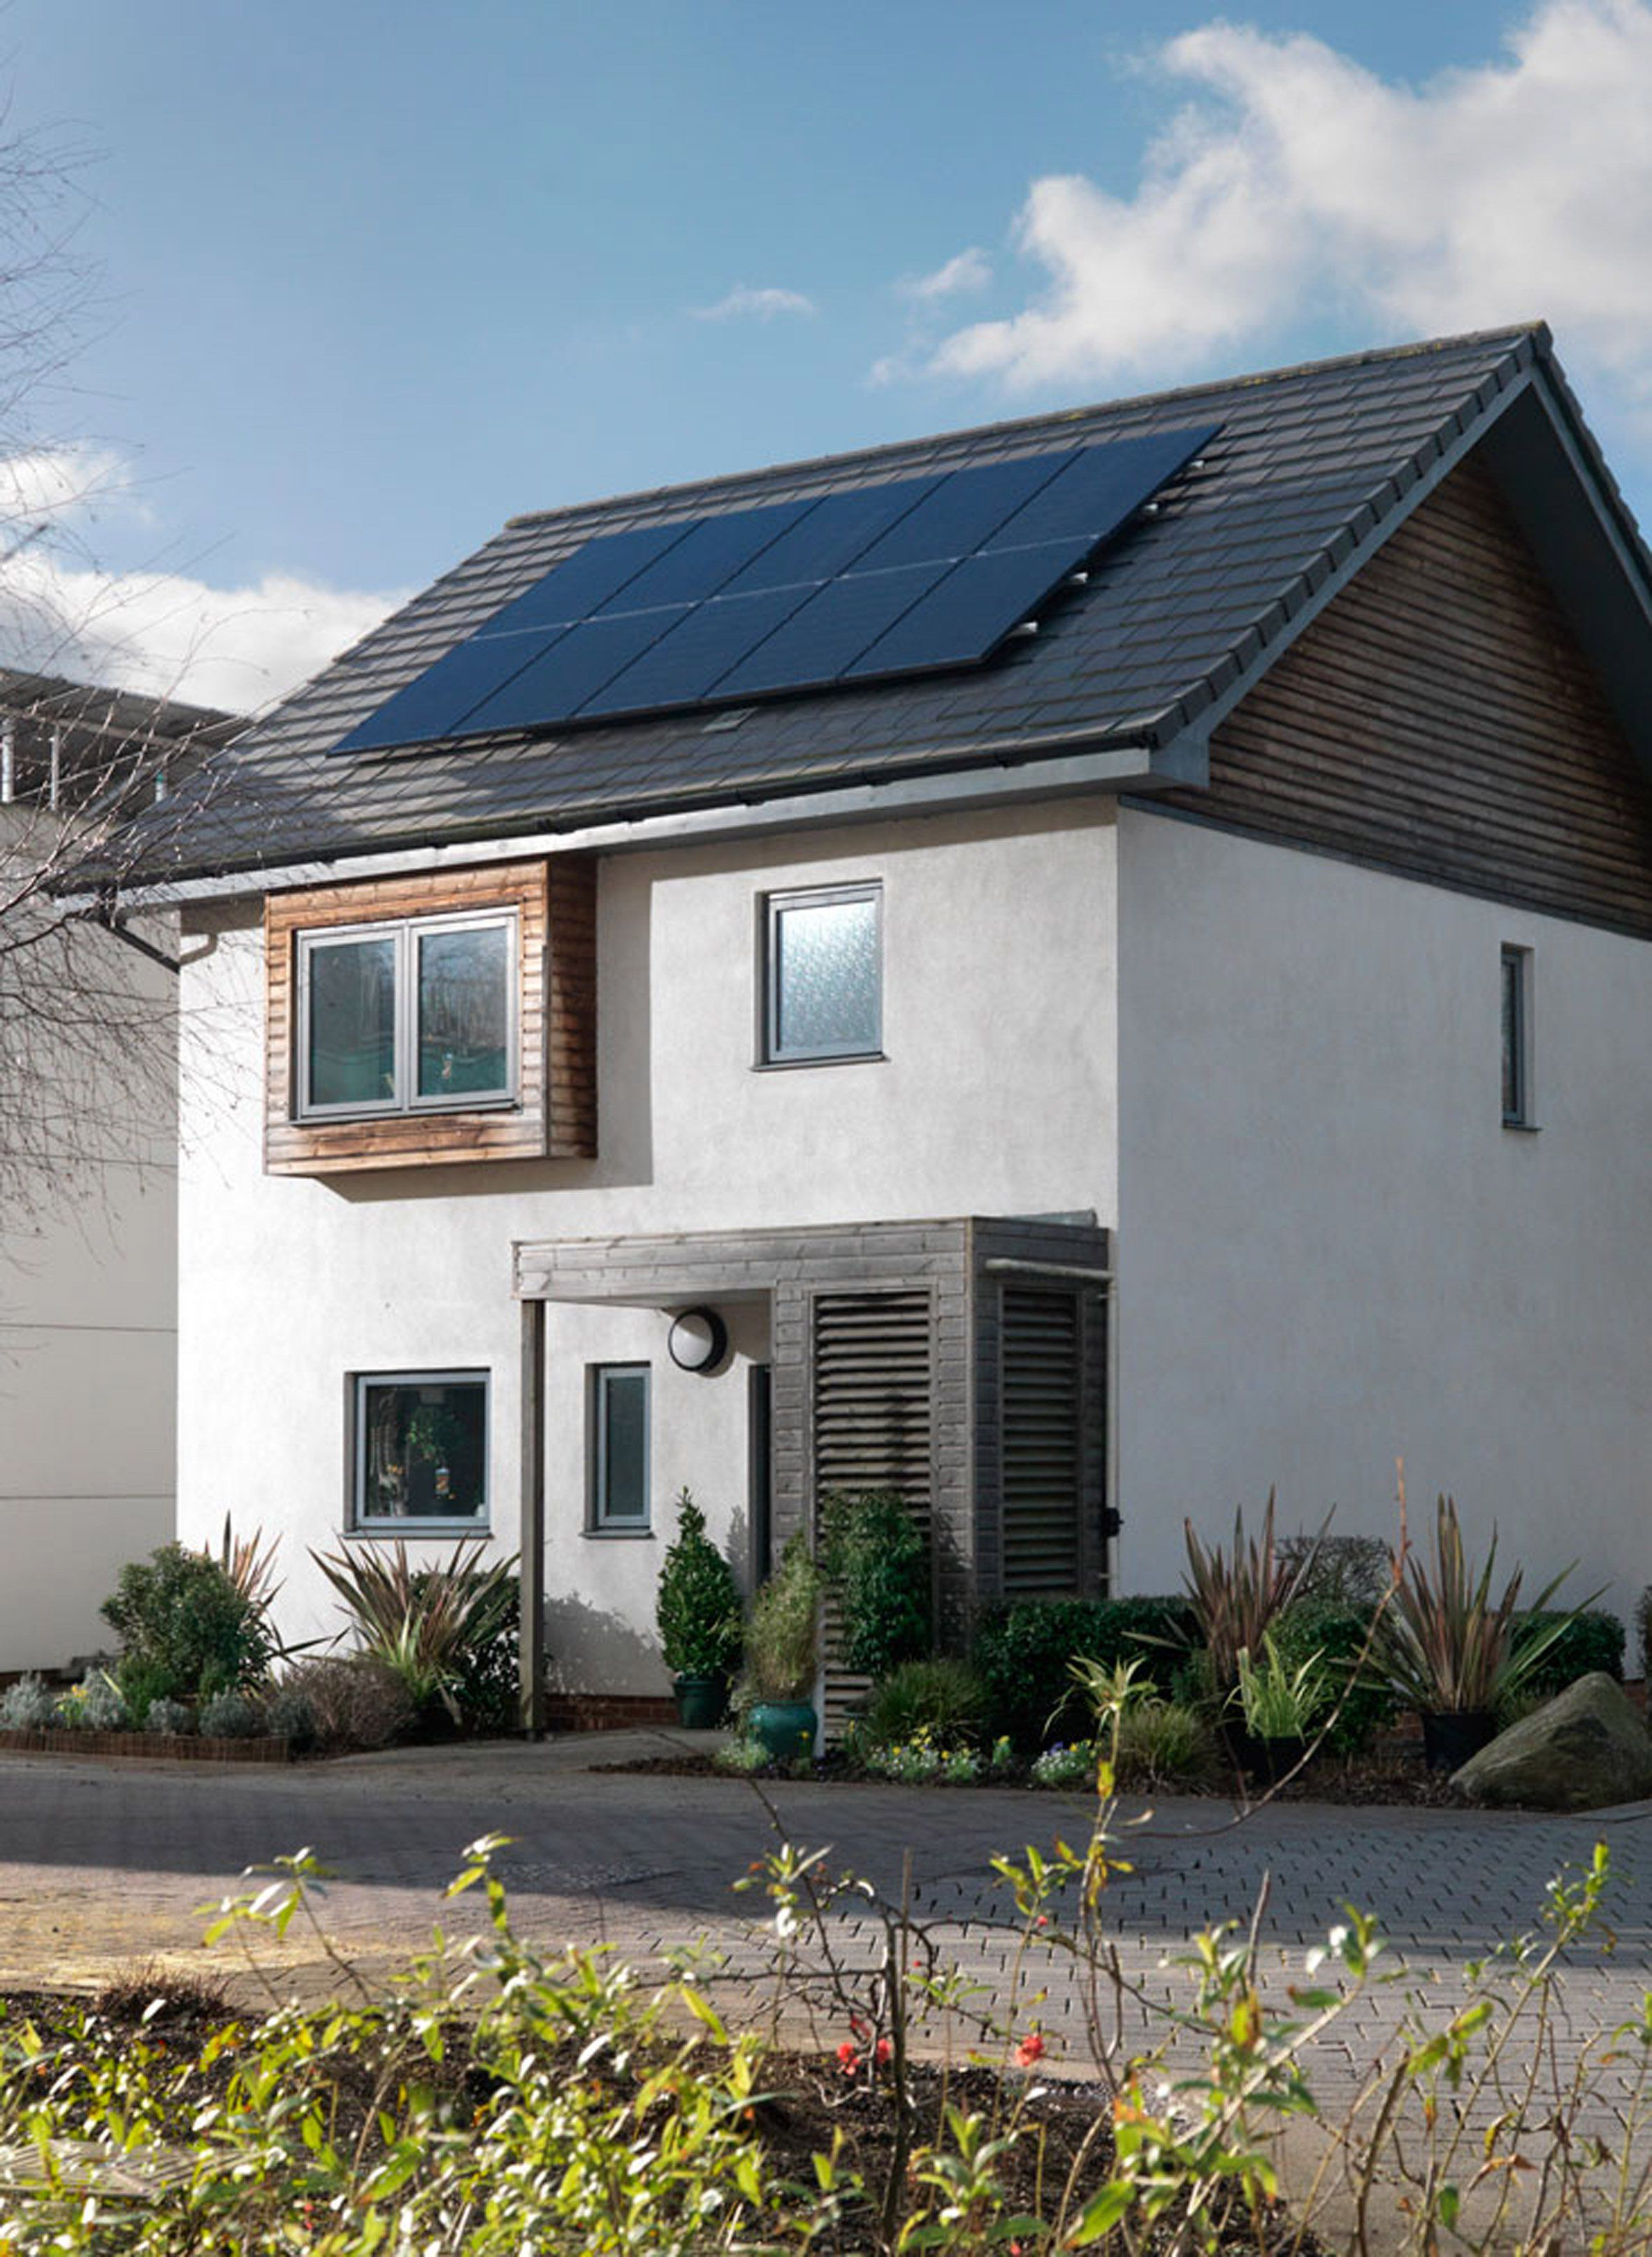 Ikea Launches Solar Panels In The Uk Solar Panels Best Solar Panels Solar Panels Roof